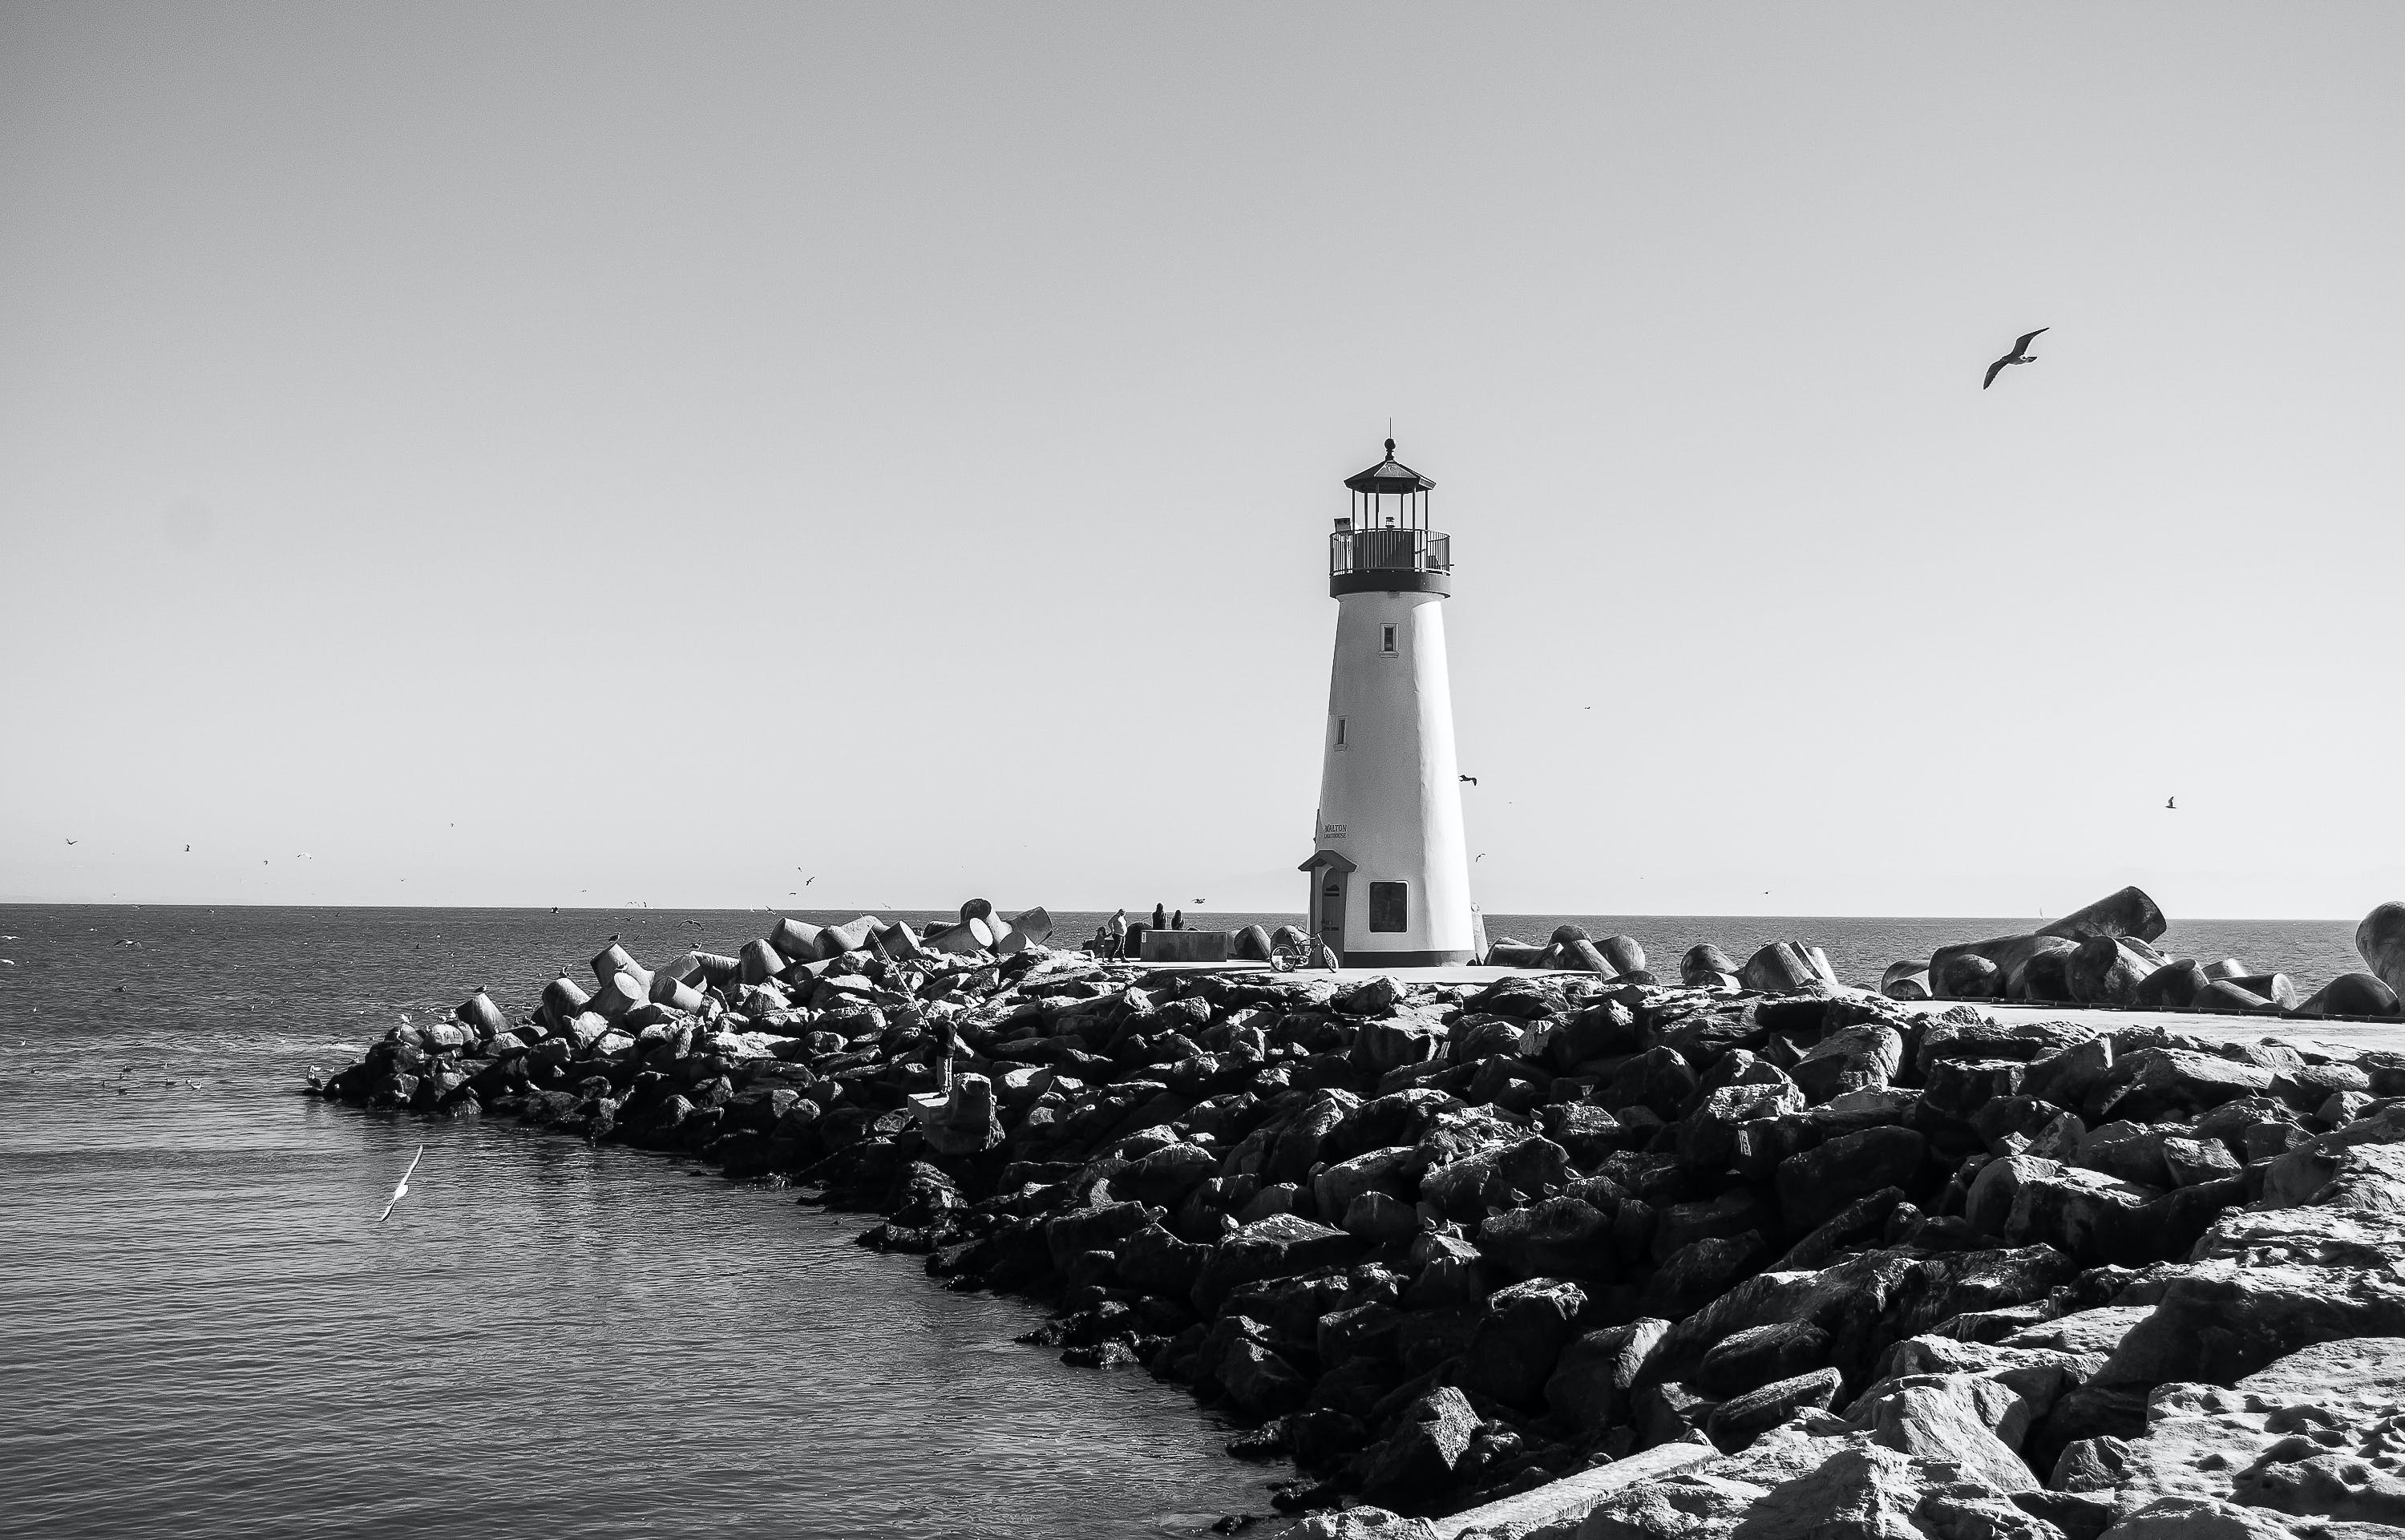 Grayscale Photography of Bird Flying Near Lighthouse by the Sea